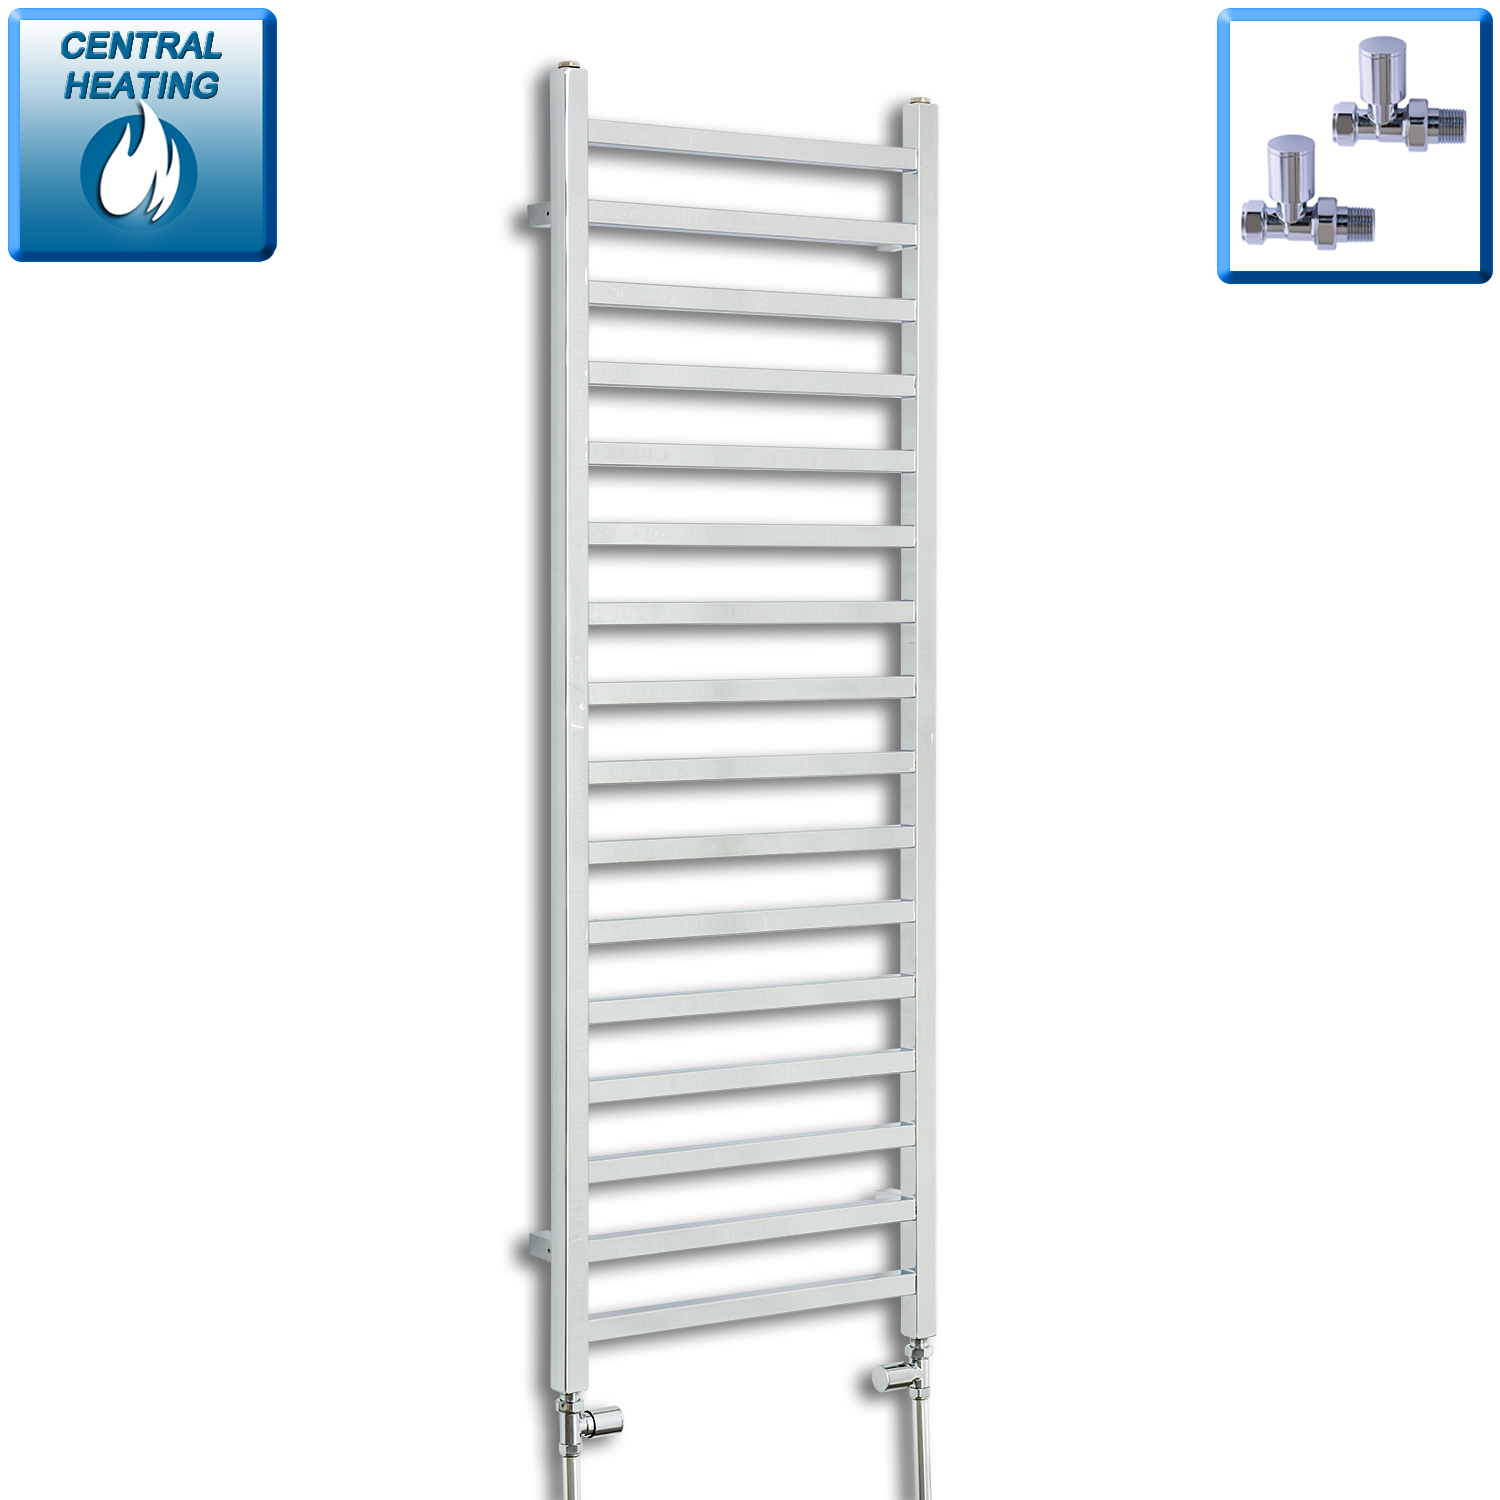 500mm Wide 1400mm High Chrome Towel Rail Radiator With Angled Valve